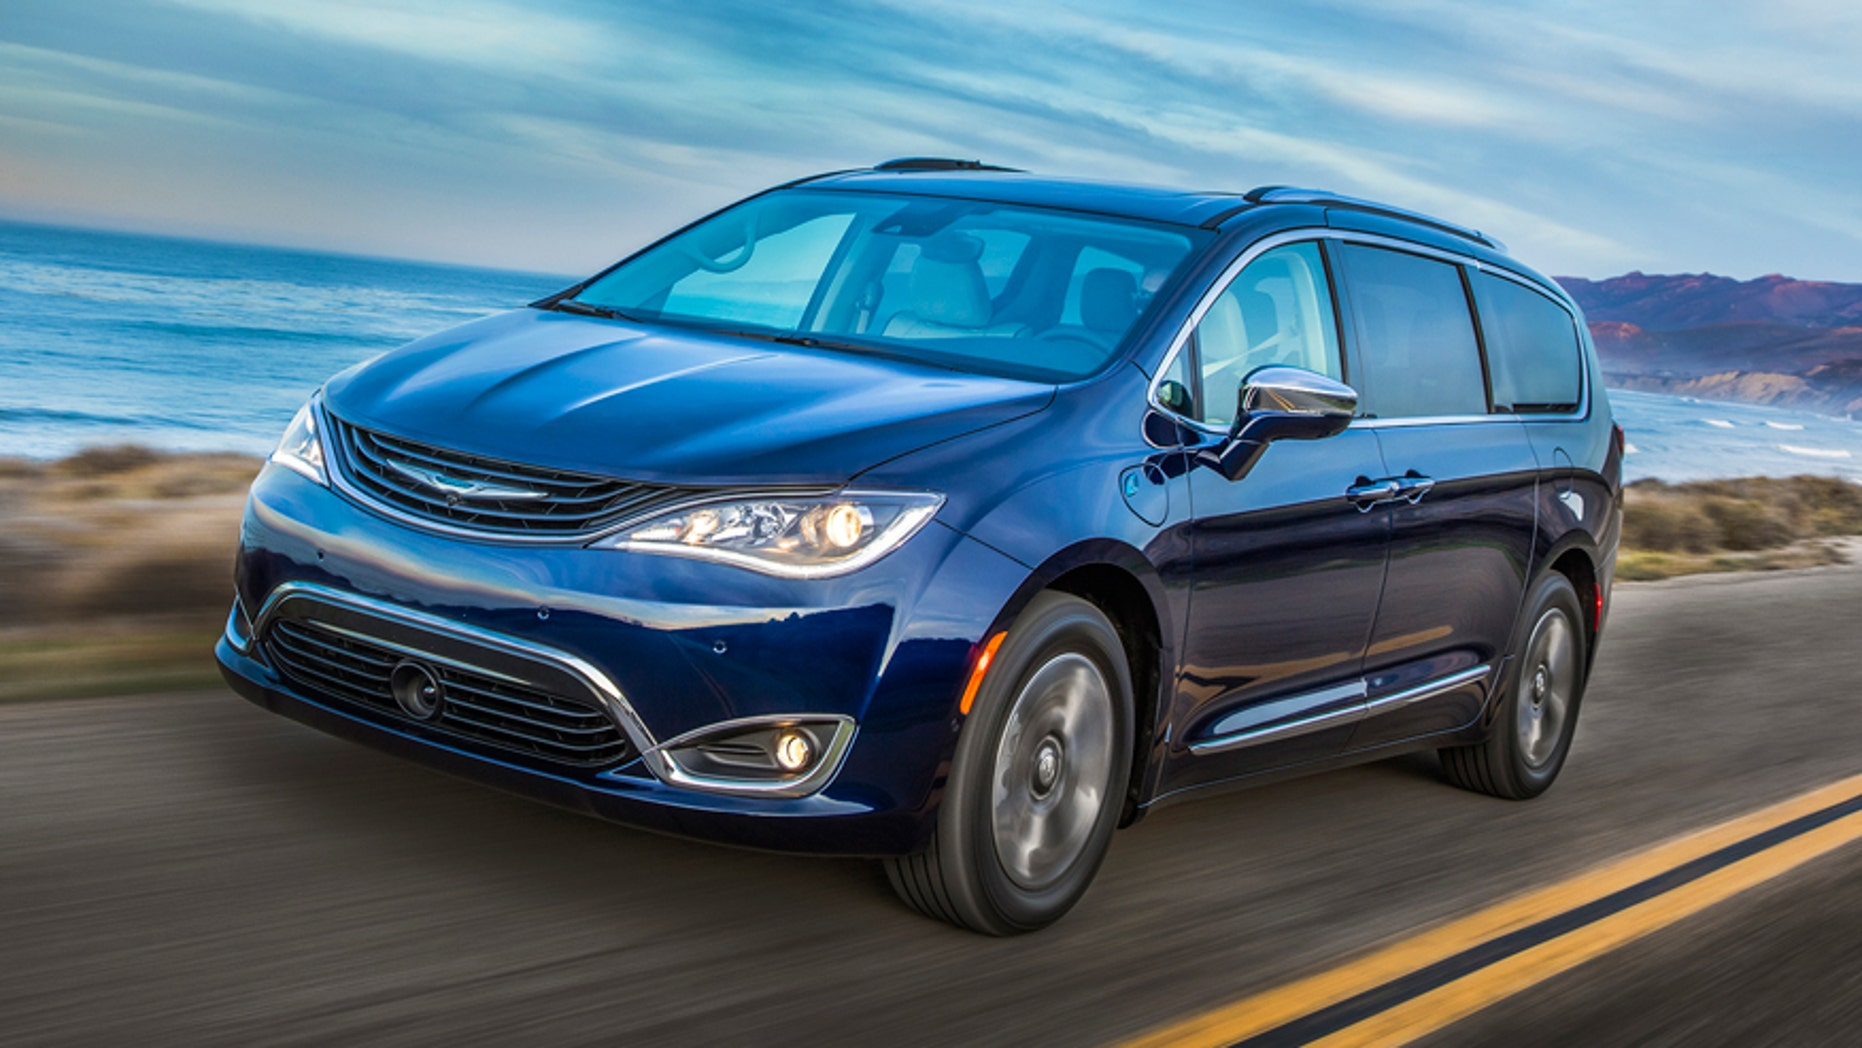 2017 Chrysler Pacifica Hybrid Test Drive